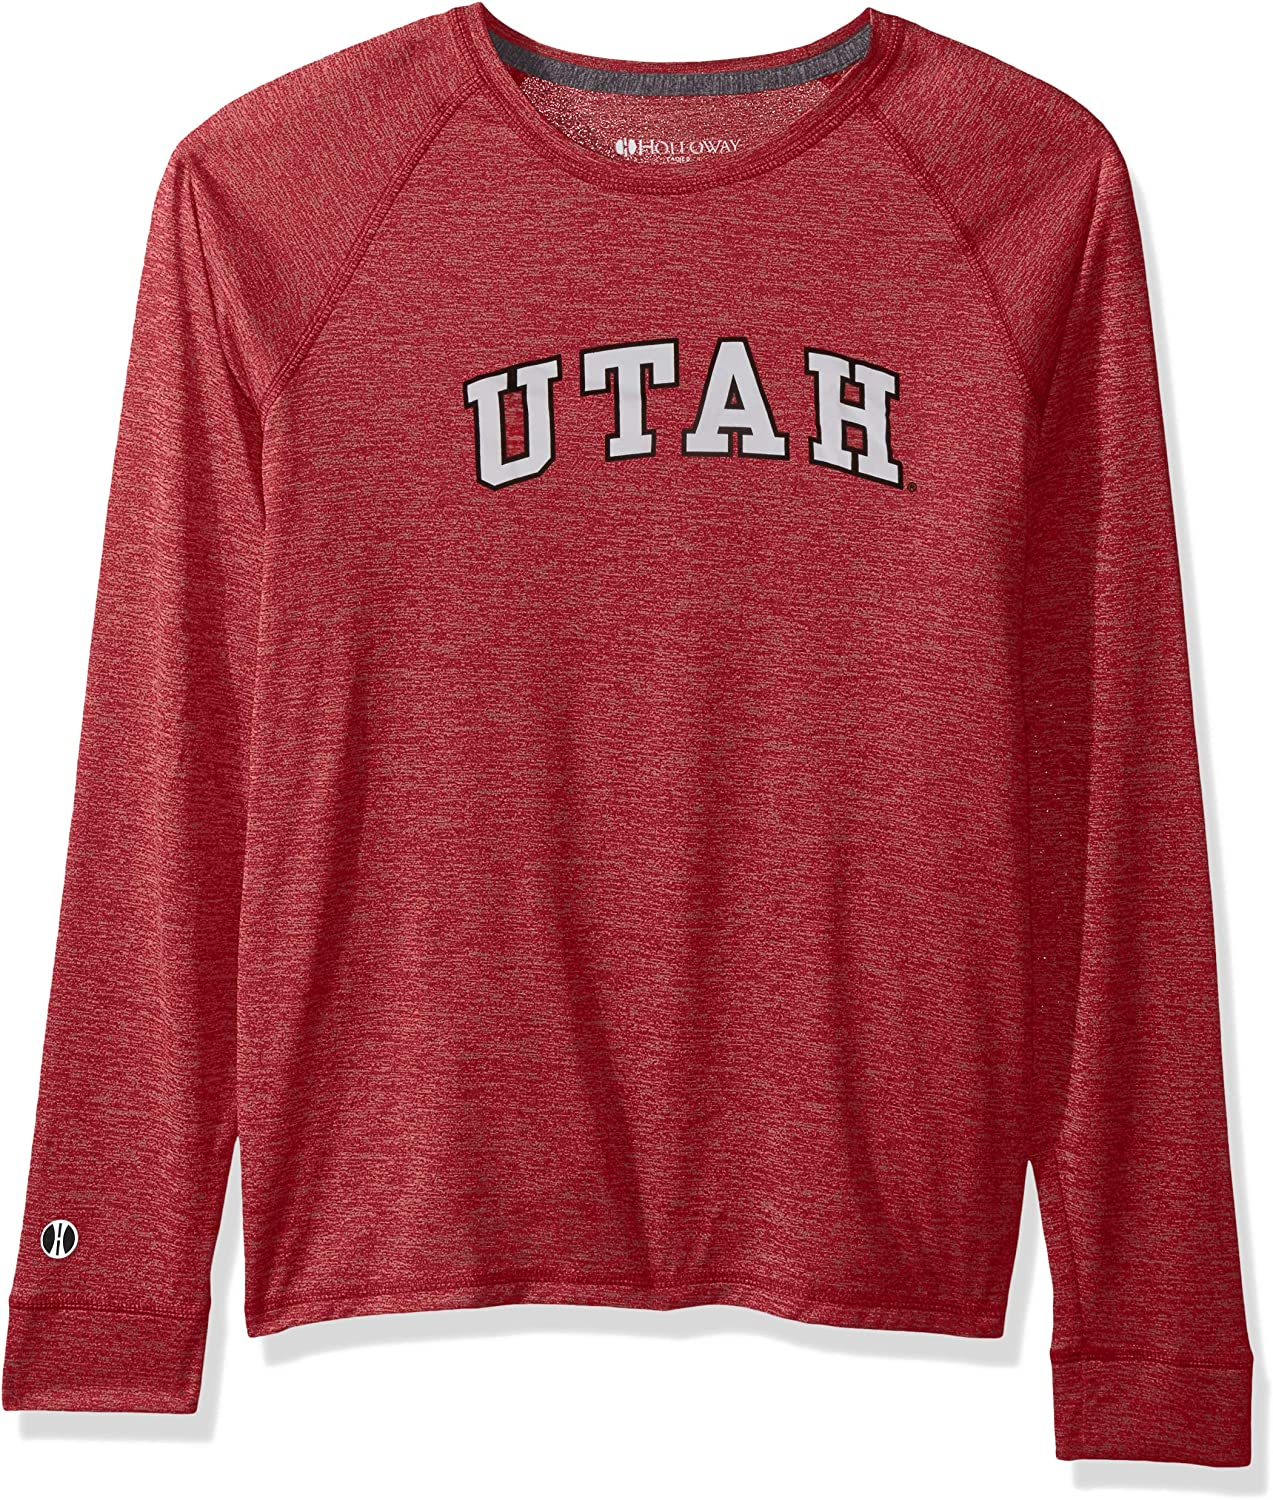 Ouray Sportswear Max 52% OFF Women's Electrify L S Tee 2.0 Max 49% OFF